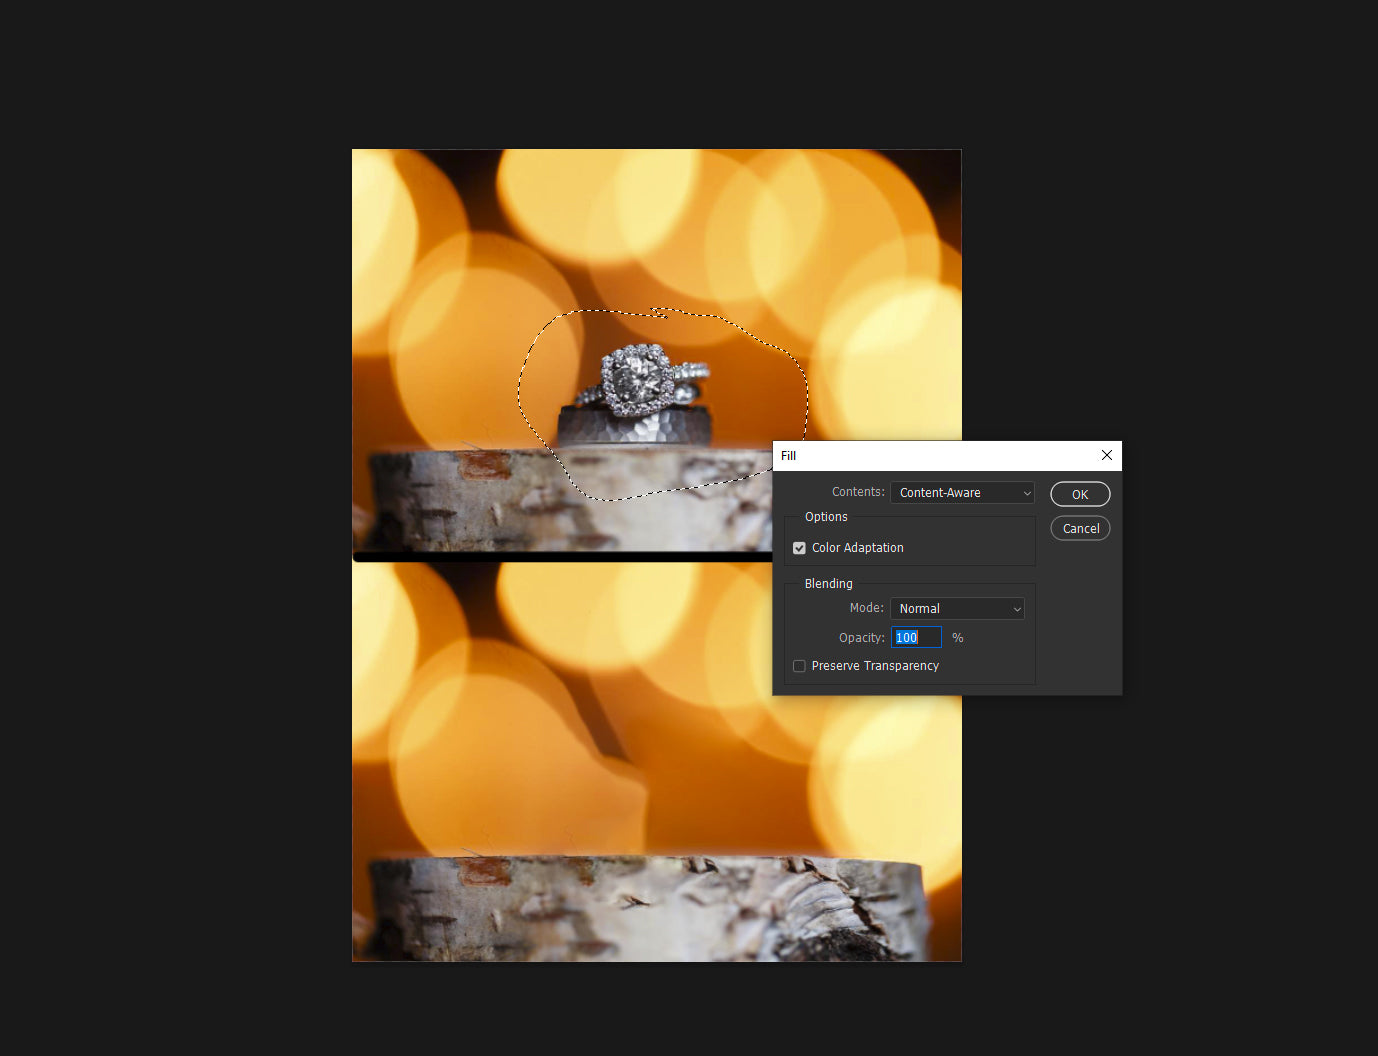 Removing objects from an image in Photoshop